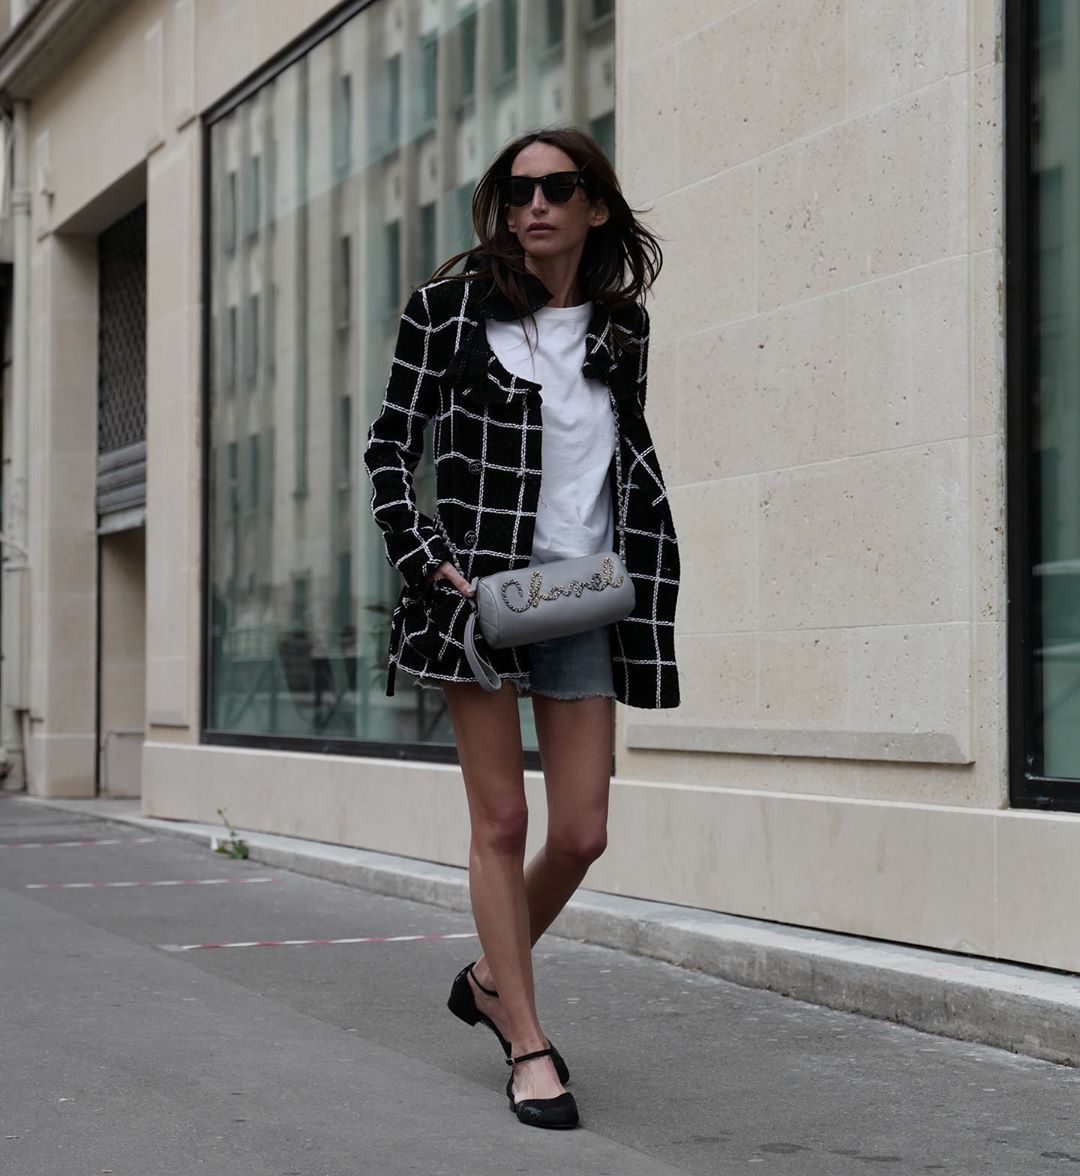 chloe-harrouche-chanel-black-white-tweed-jacket-instagram